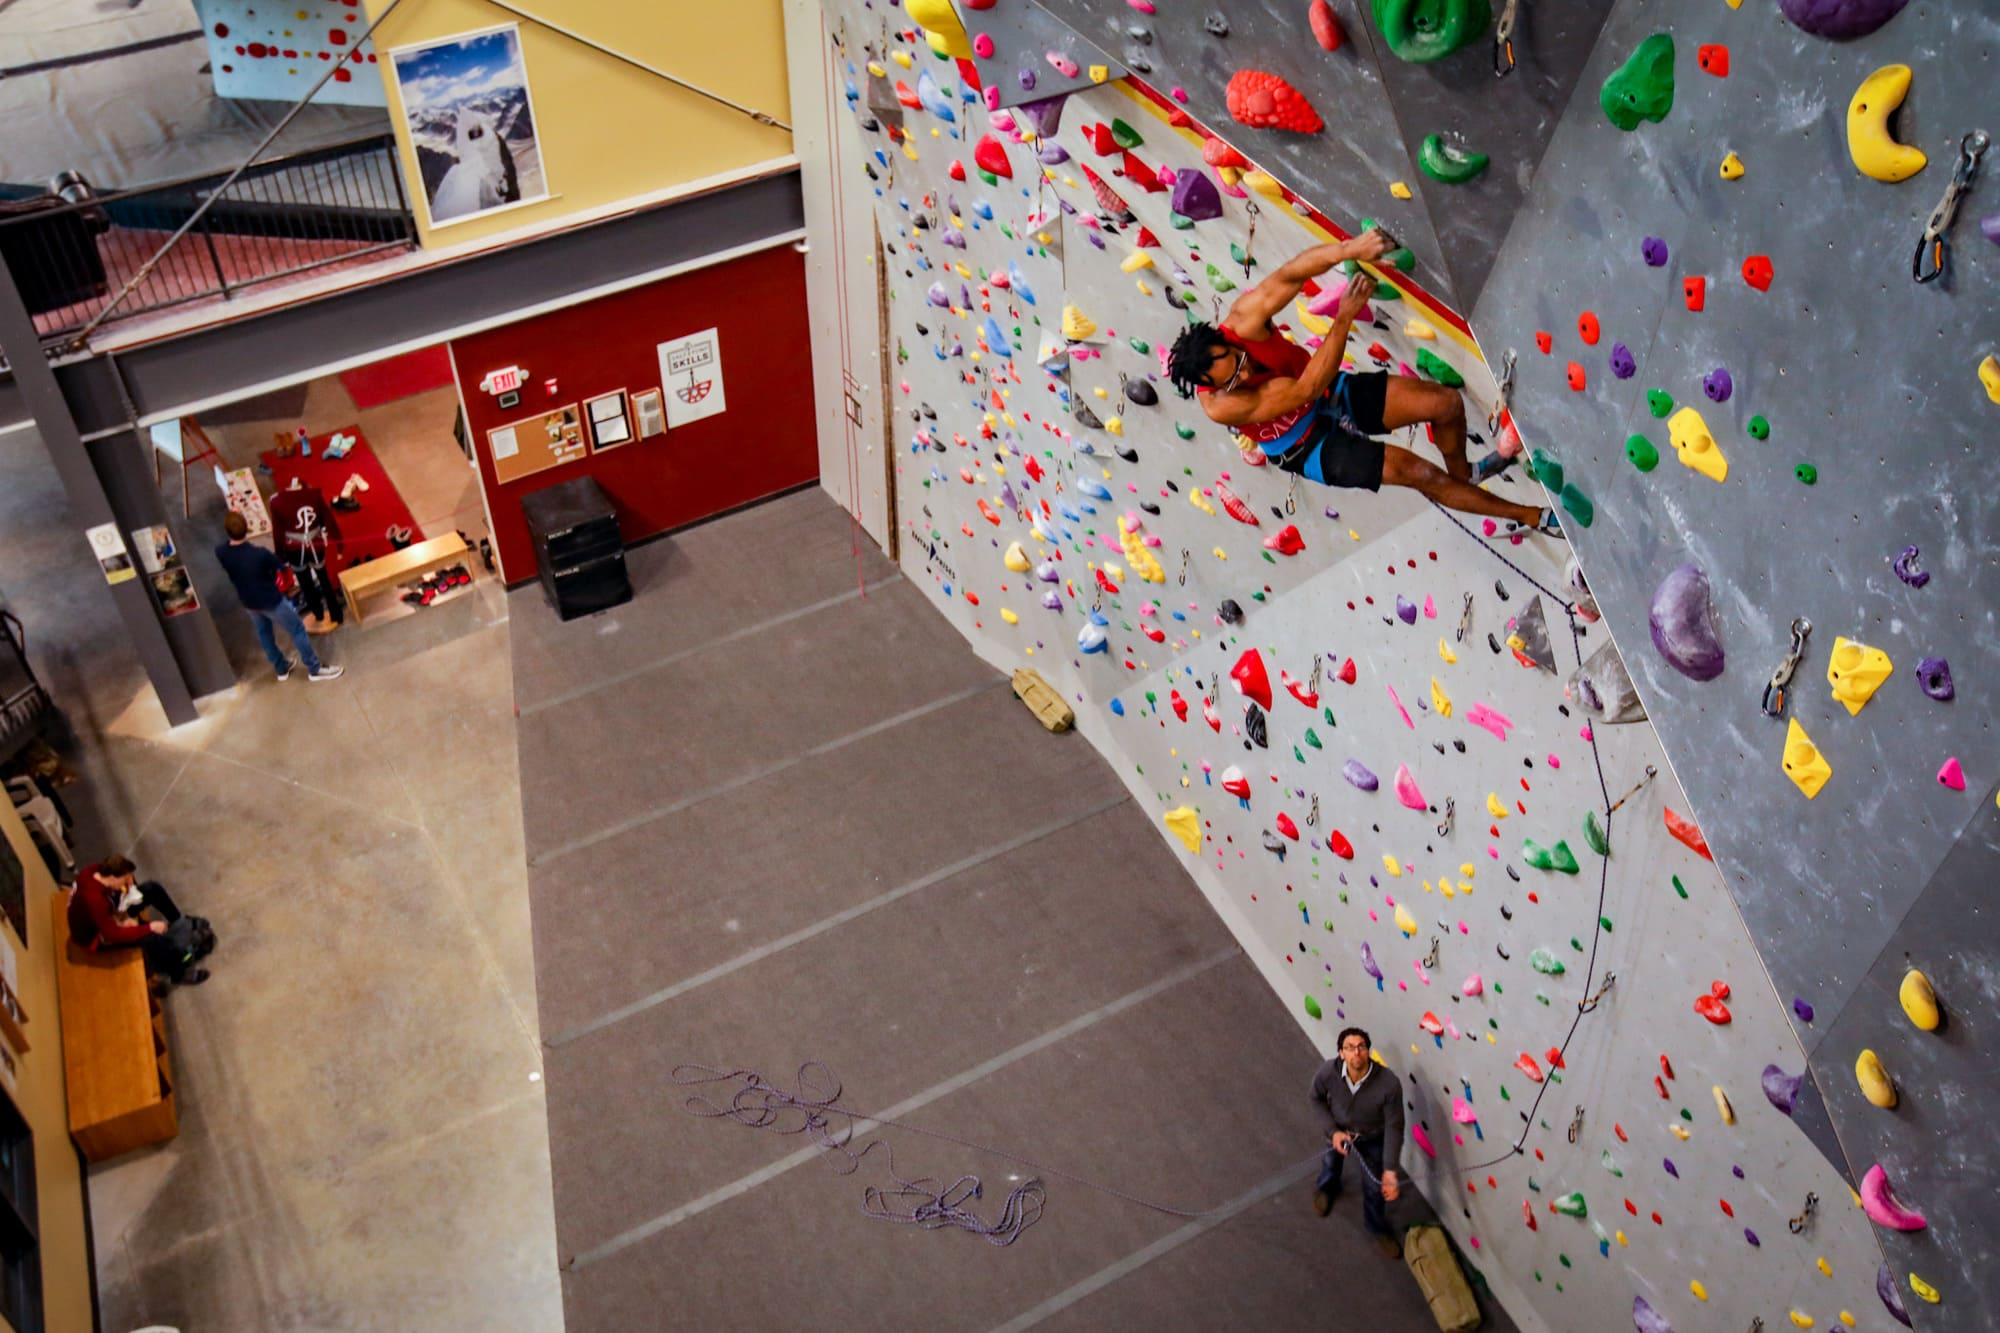 Route-setter and coach Ara Morton sending a few laps on the lead wall back in the before-the-virus days.